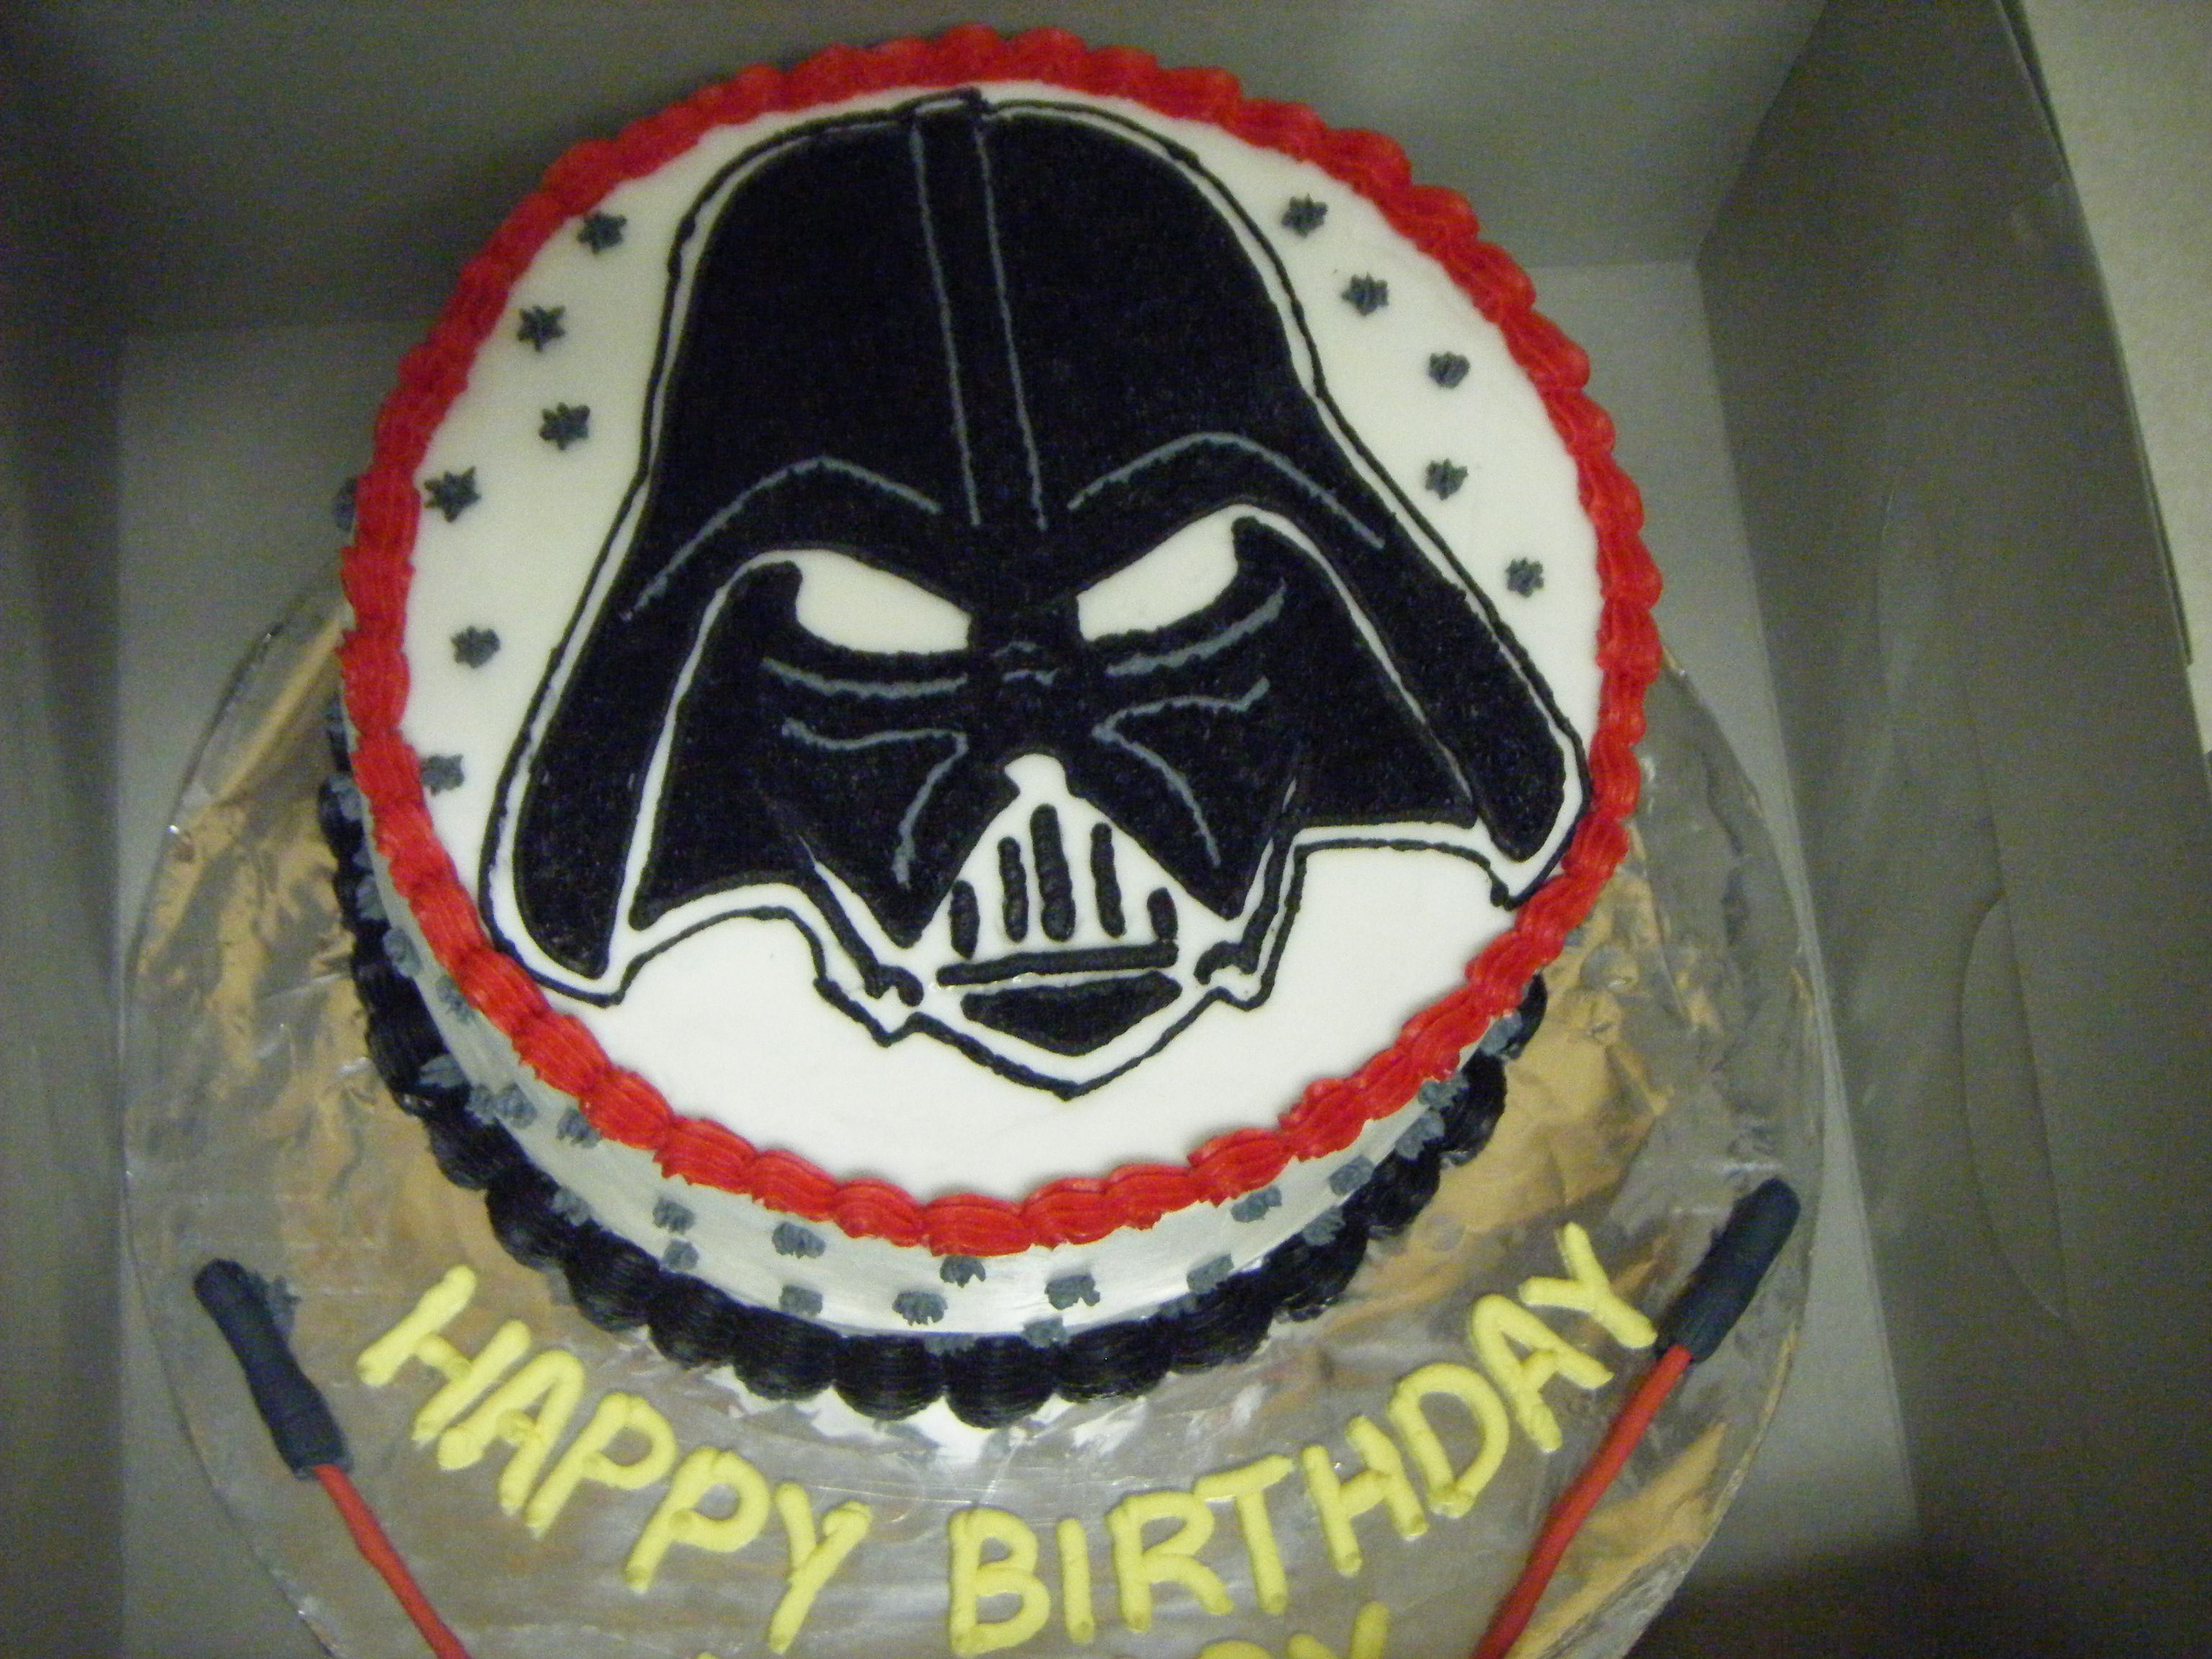 Darth vader birthday cake Two layer 8 chocolate cake with